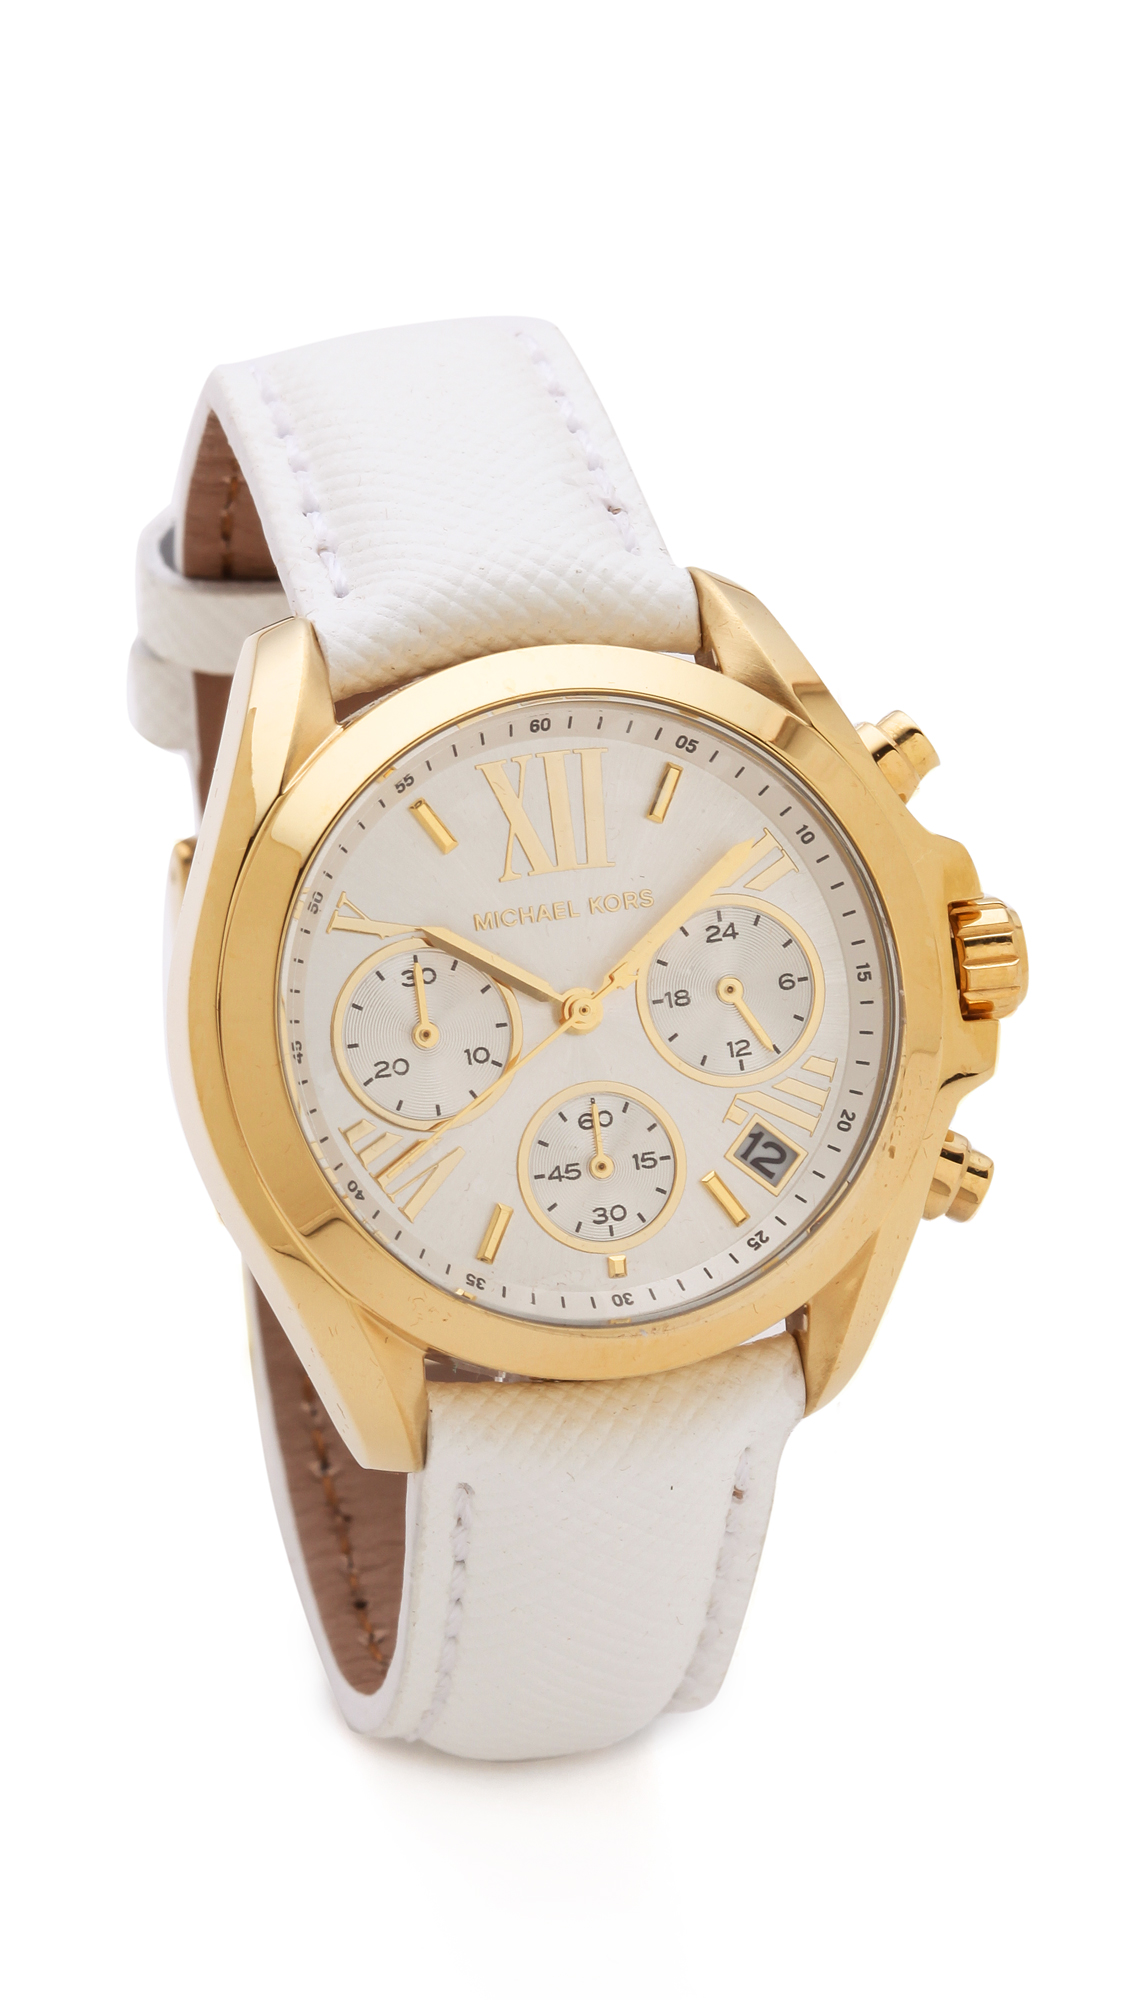 Michael kors leather bradshaw watch in white null lyst for Watches michael kors